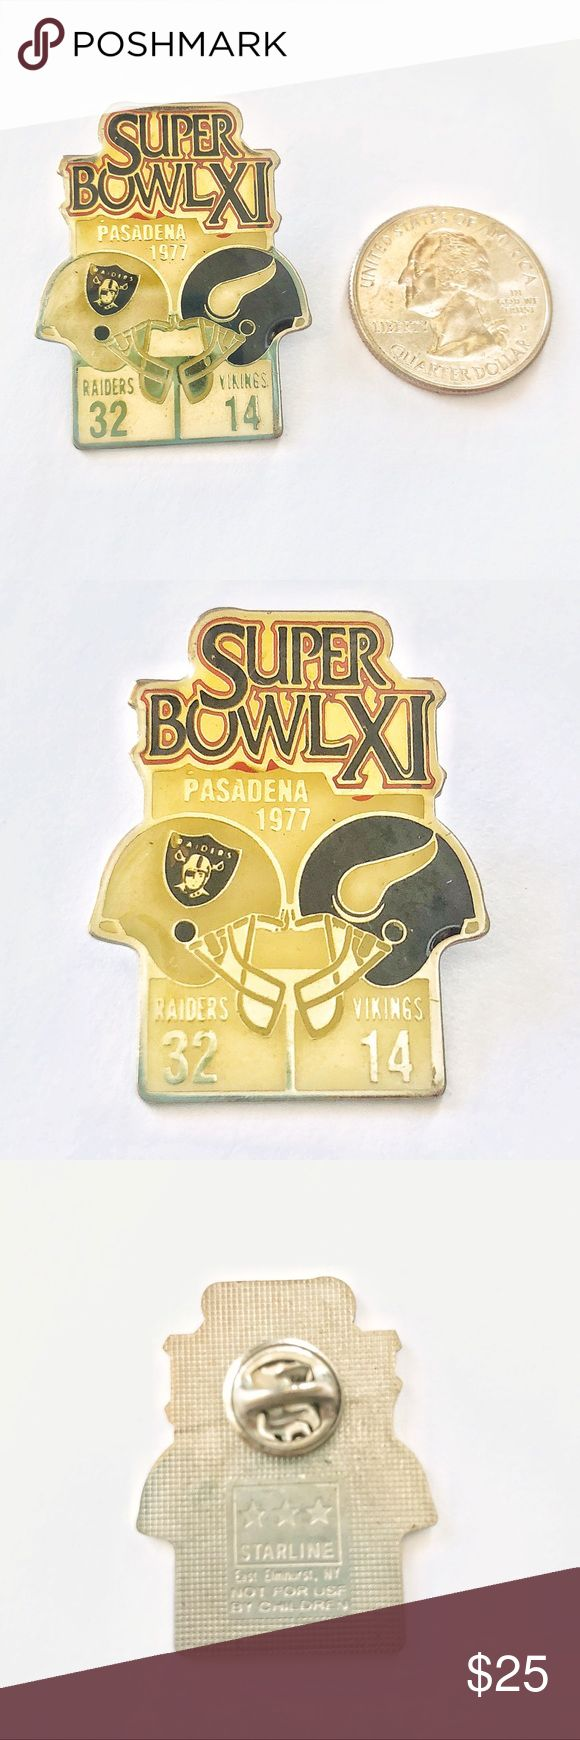 VTG🏈Super Bowl XI NFL Vikings Raiders Enamel Pin True 70s vintage! NFL Commemorative 1977 Super Bowl XI Pin, Minnesota Vikings vs Oakland Raiders in Pasadena California! In amazing condition. A little yellowing from age, common for true vintage items! Offers welcome! 🌟🏈🌟 Tags: football sports AFC NFC broncos packers chiefs patriots eagles niners rams chargers buccaneers dolphins bills a's Seahawks Texans cowboys Dallas Denver Philadelphia 70's VTG favre Madden Other